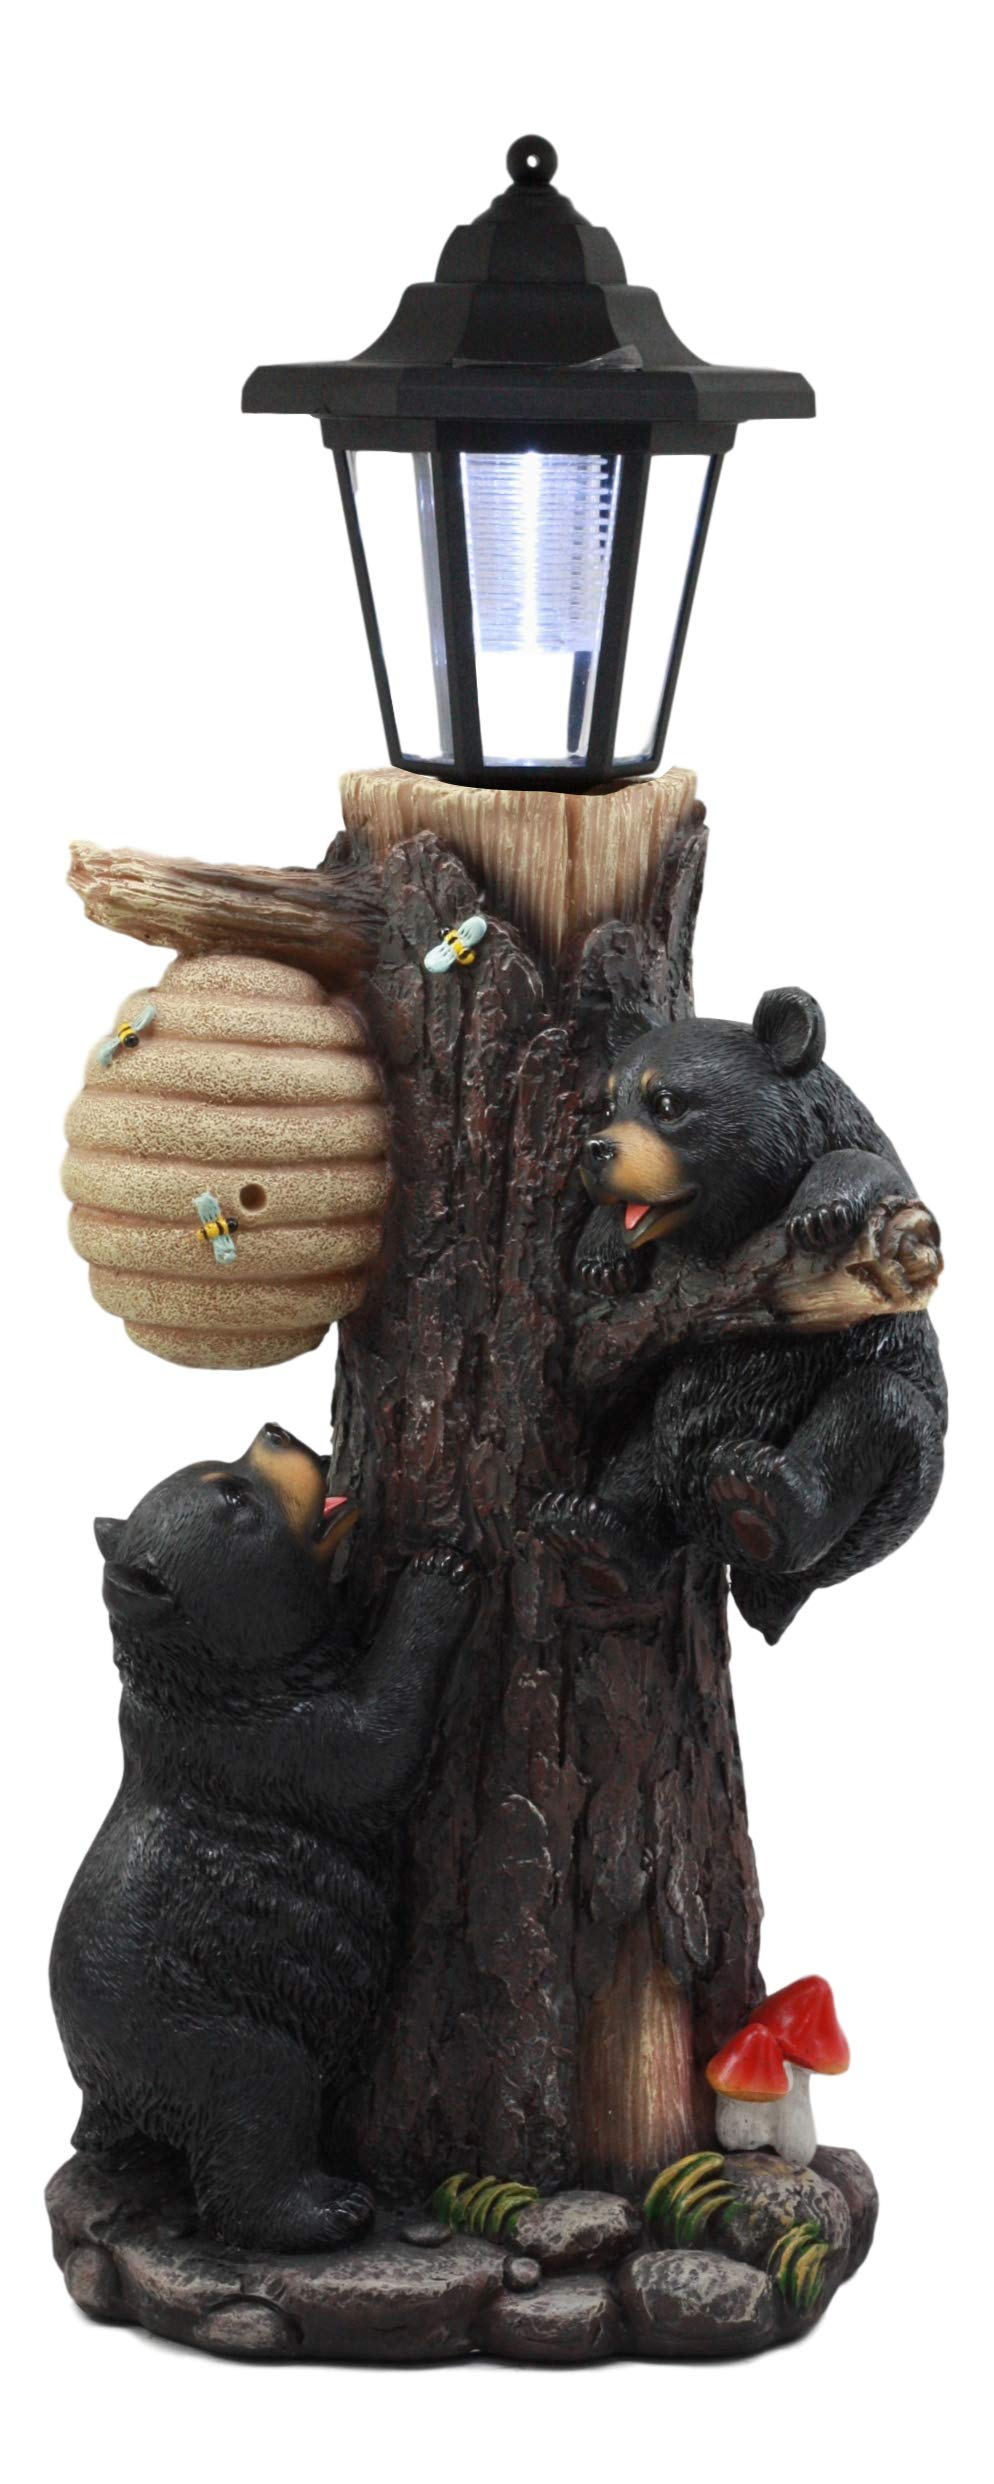 Ebros Large Climbing Black Bear Cubs Reaching for Honeycomb Beehive LED Path Lighter Statue 19''Tall with Solar Lantern Light Welcome Sign Guest Greeter Decor Figurine by Ebros Gift